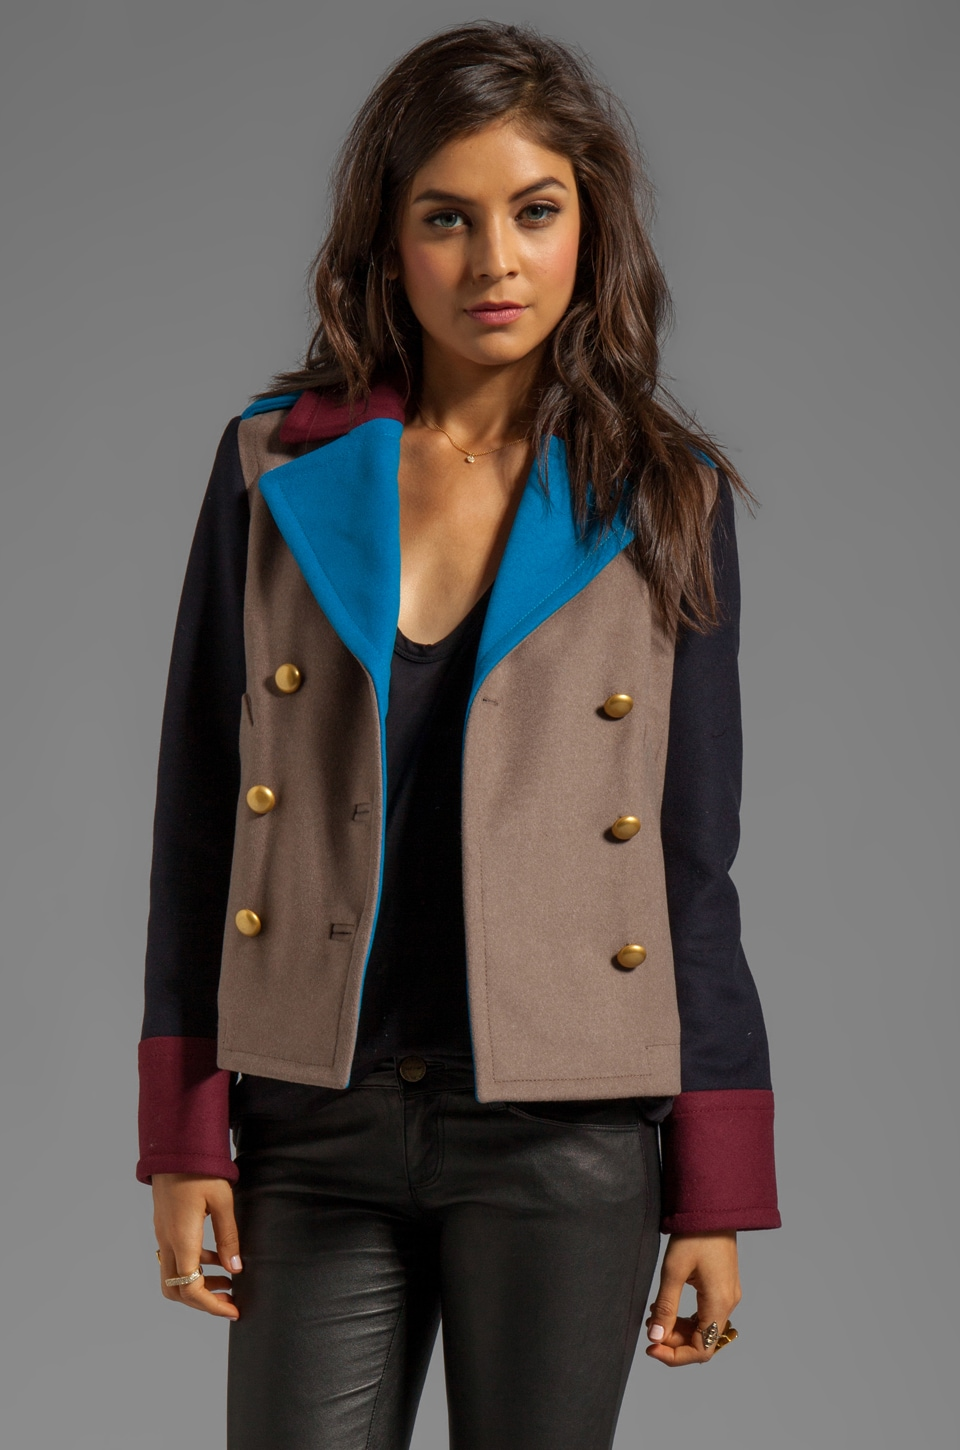 Marc by Marc Jacobs Nicolette Colorblocked Wool Jacket in Dusty Brown Melange Multi